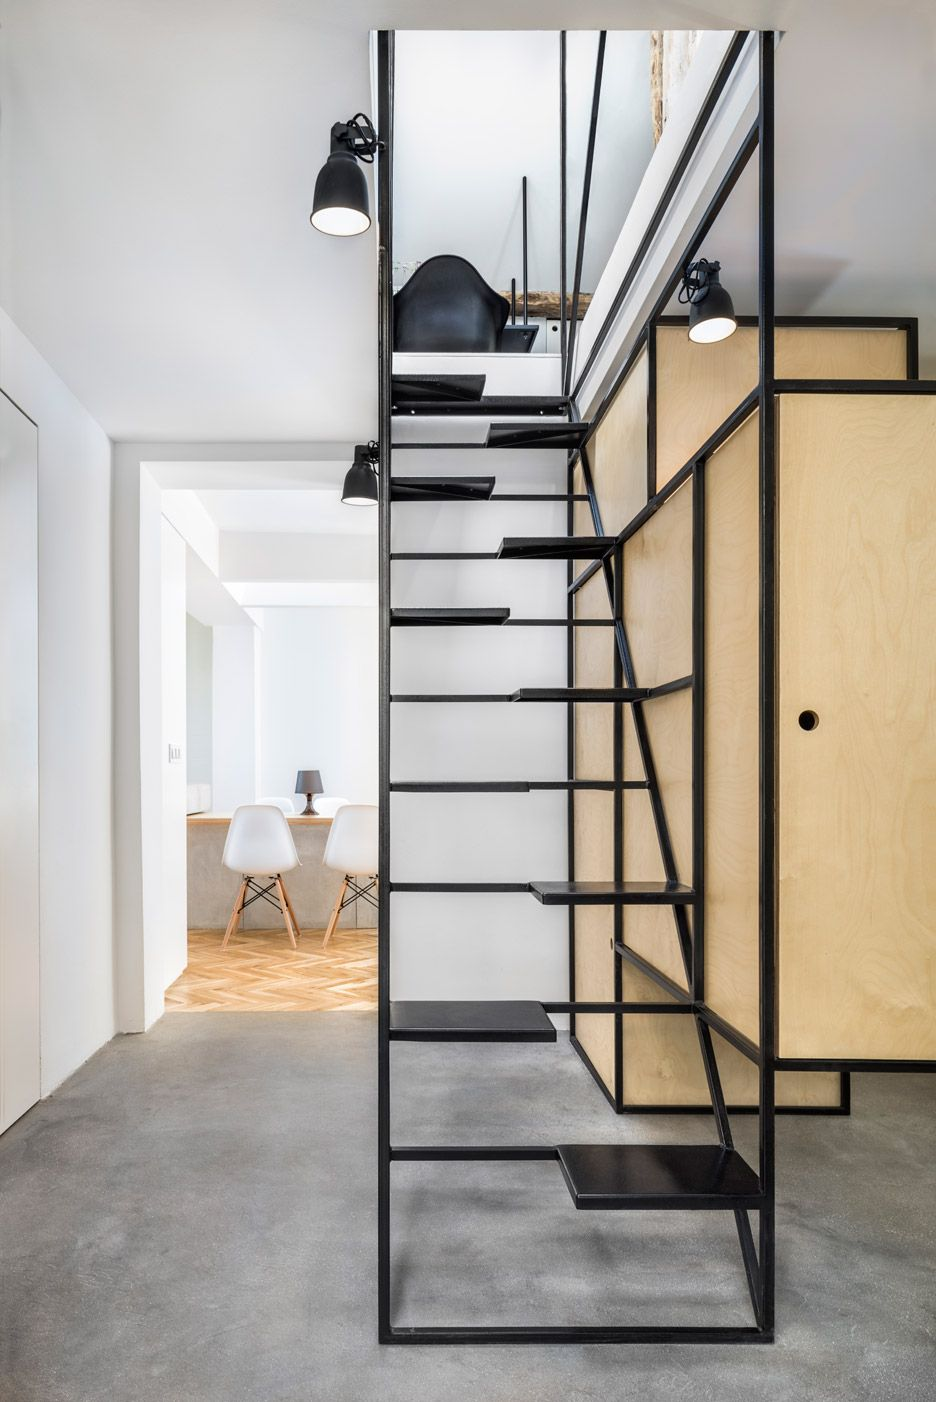 Incroyable DontDIY Installs Black Wireframe Staircase Inside House And Atelier In  Bulgaria